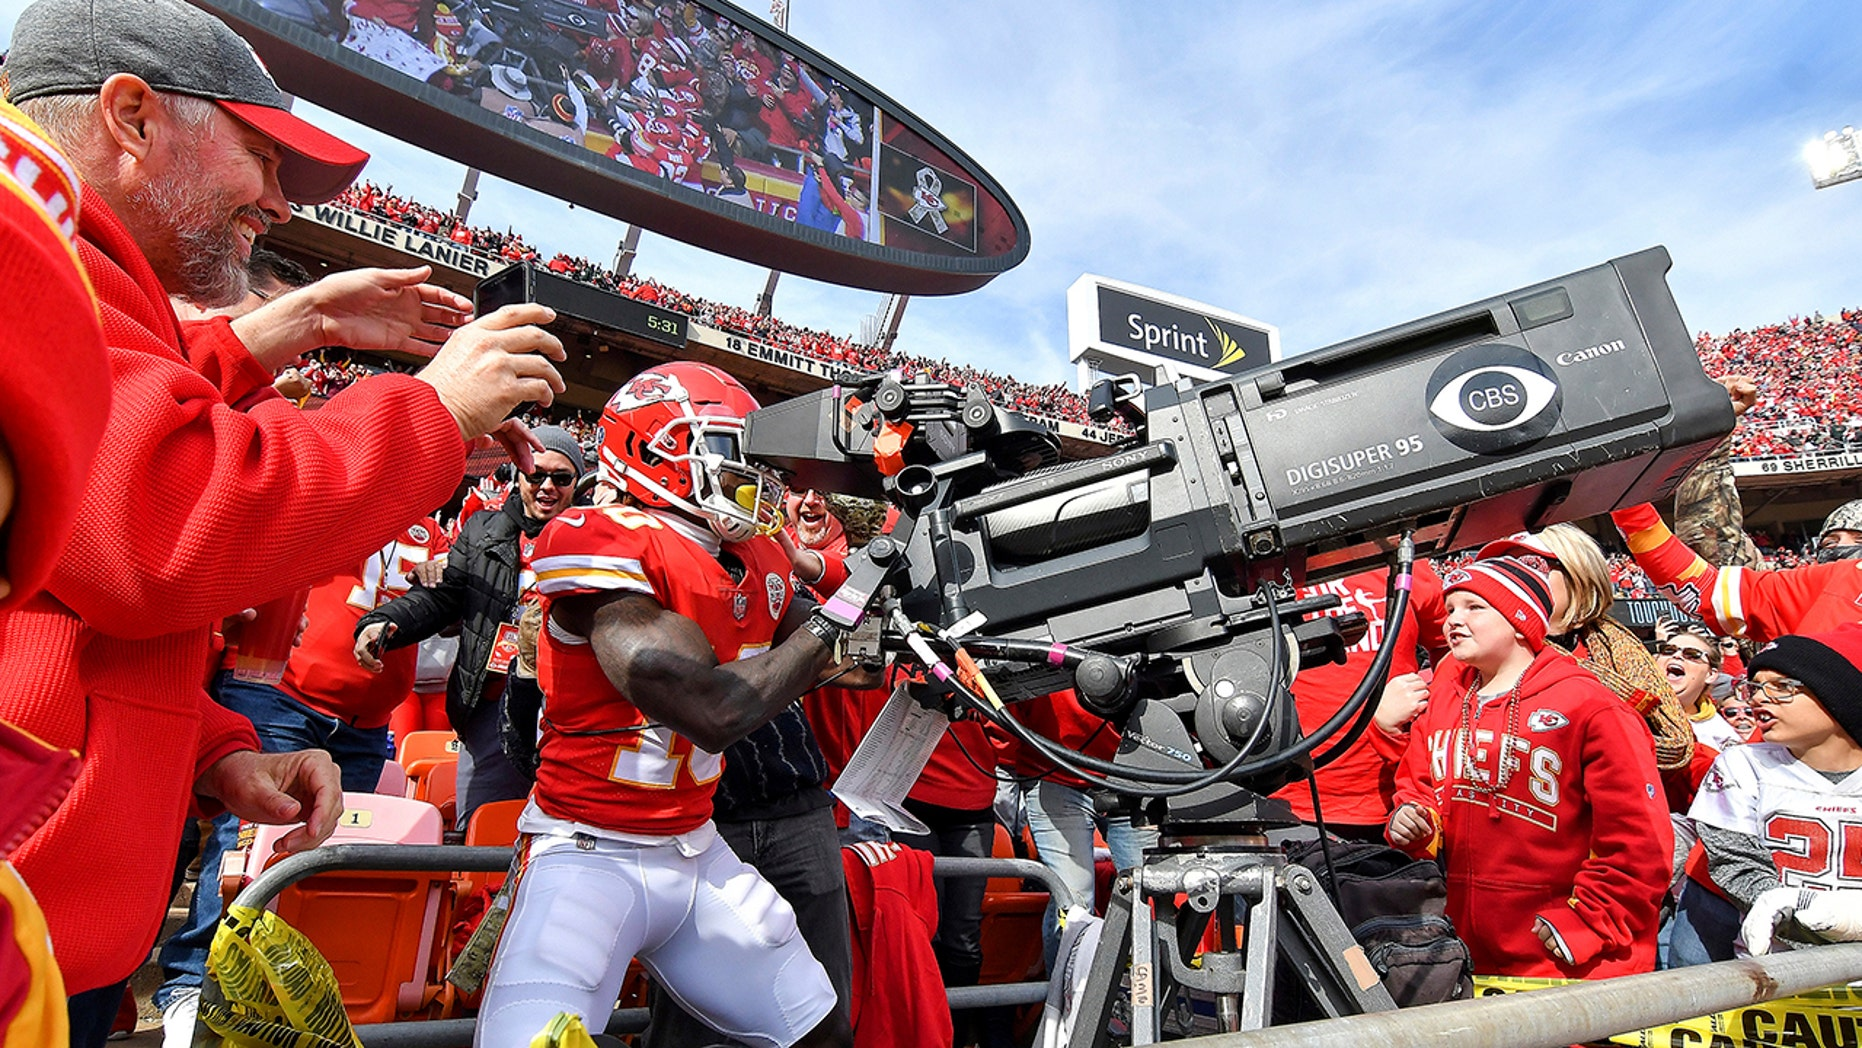 Kansas City Chiefs wide receiver Tyreek Hill takes control of the end zone television camera after scoring a touchdown on a pass from quarterback Patrick Mahomes in the second quarter of an NFL football game against the Arizona Cardinals Sunday, Nov. 11, 2018 at Arrowhead Stadium in Kansas City, Mo.